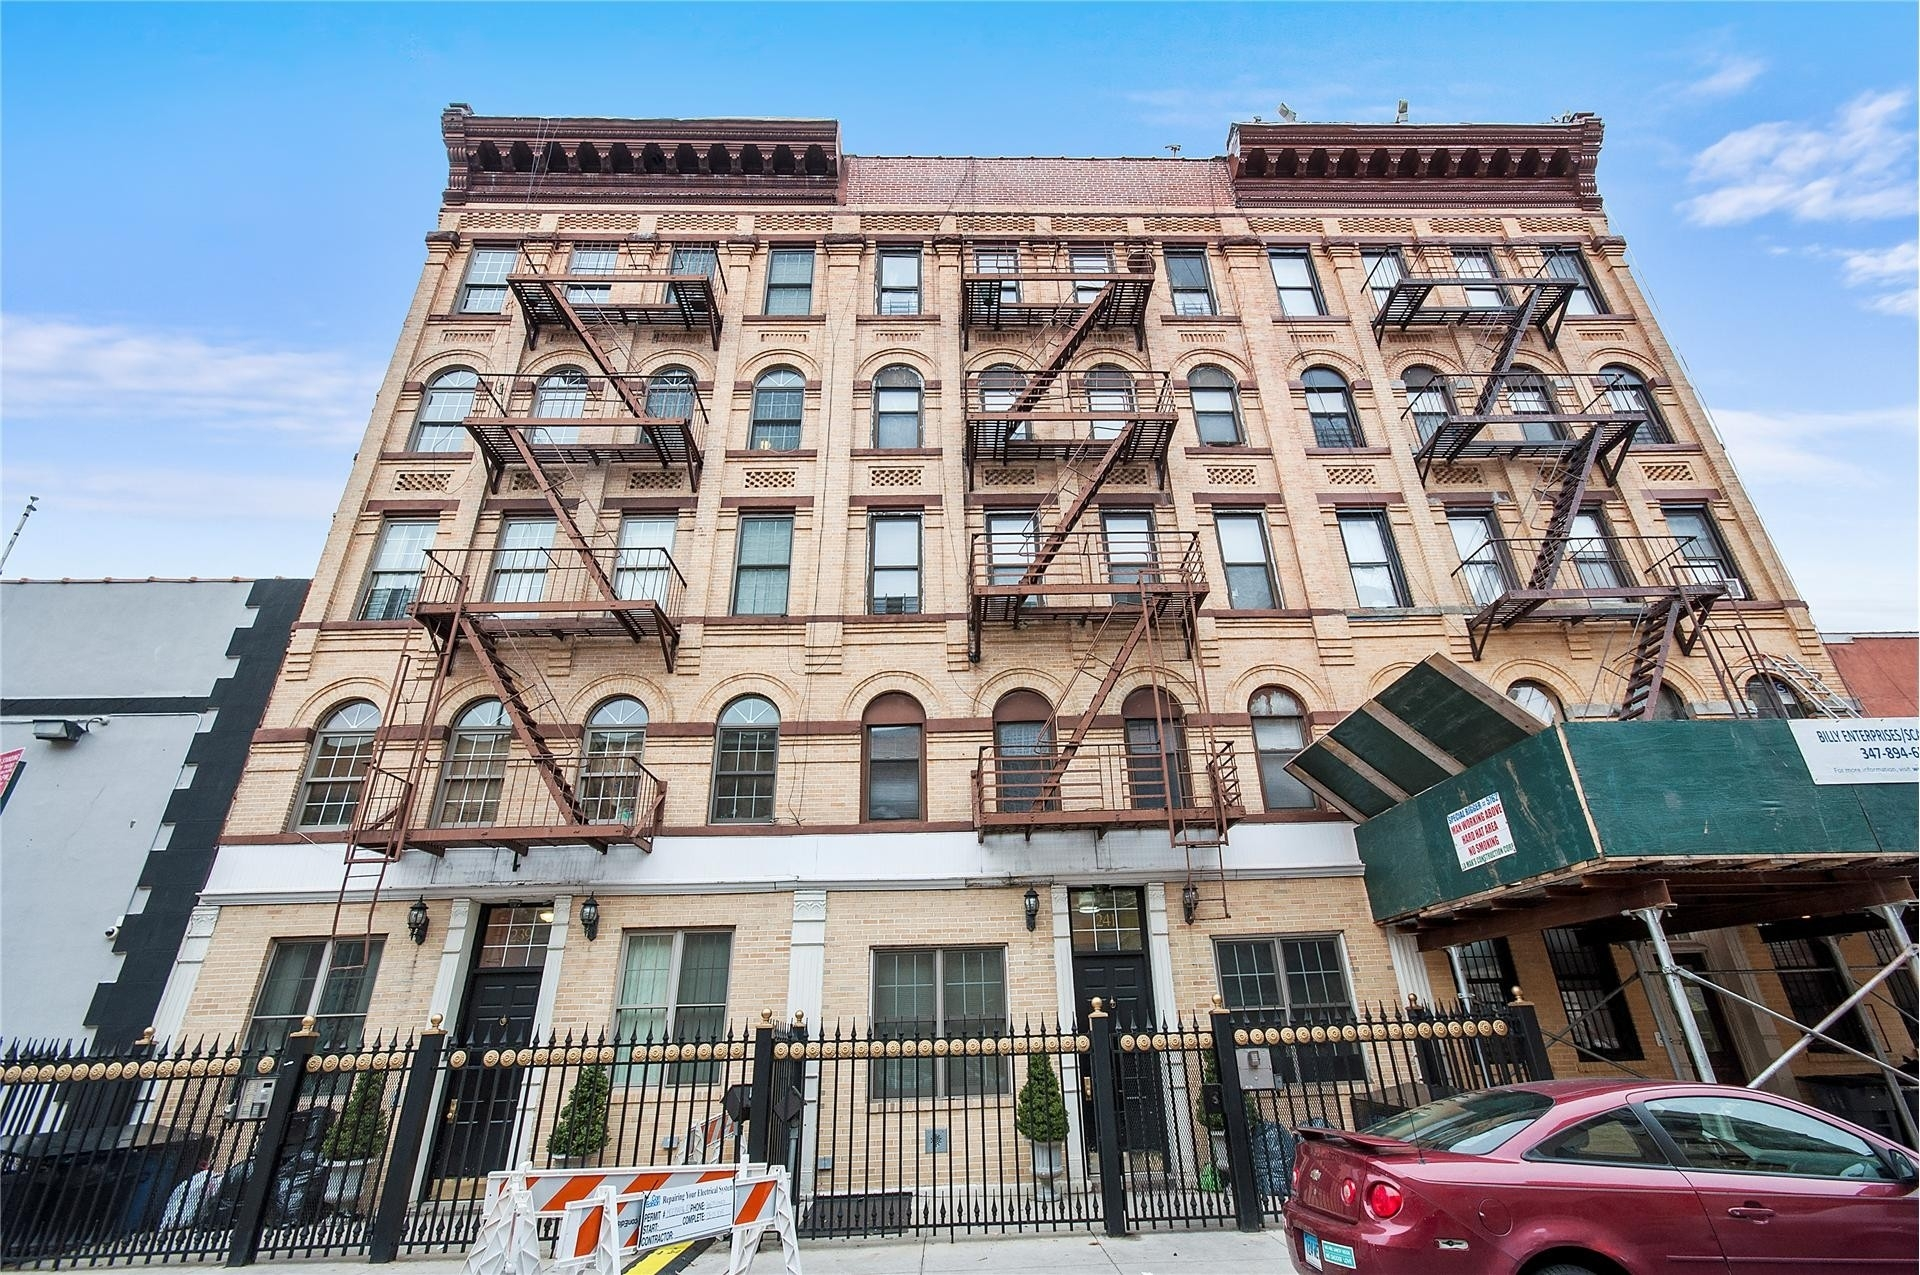 1. building at 239-245 East 120th St, East Harlem, New York, NY